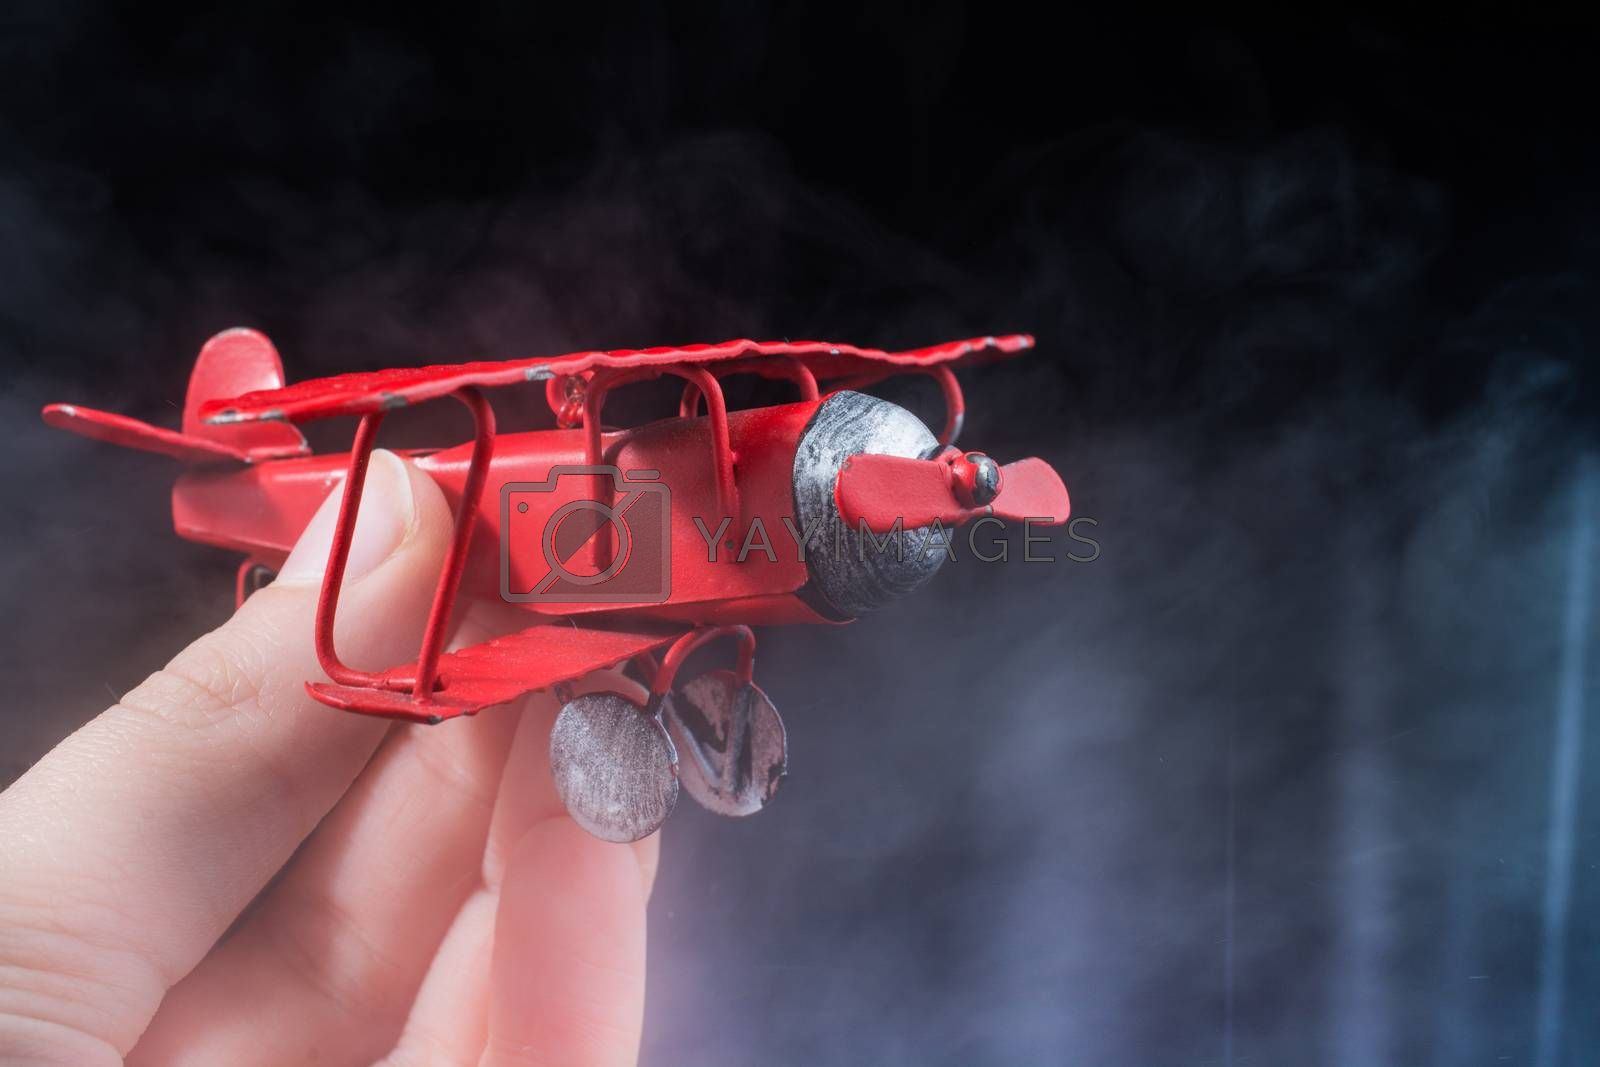 Hand holding a red toy plane on a black background